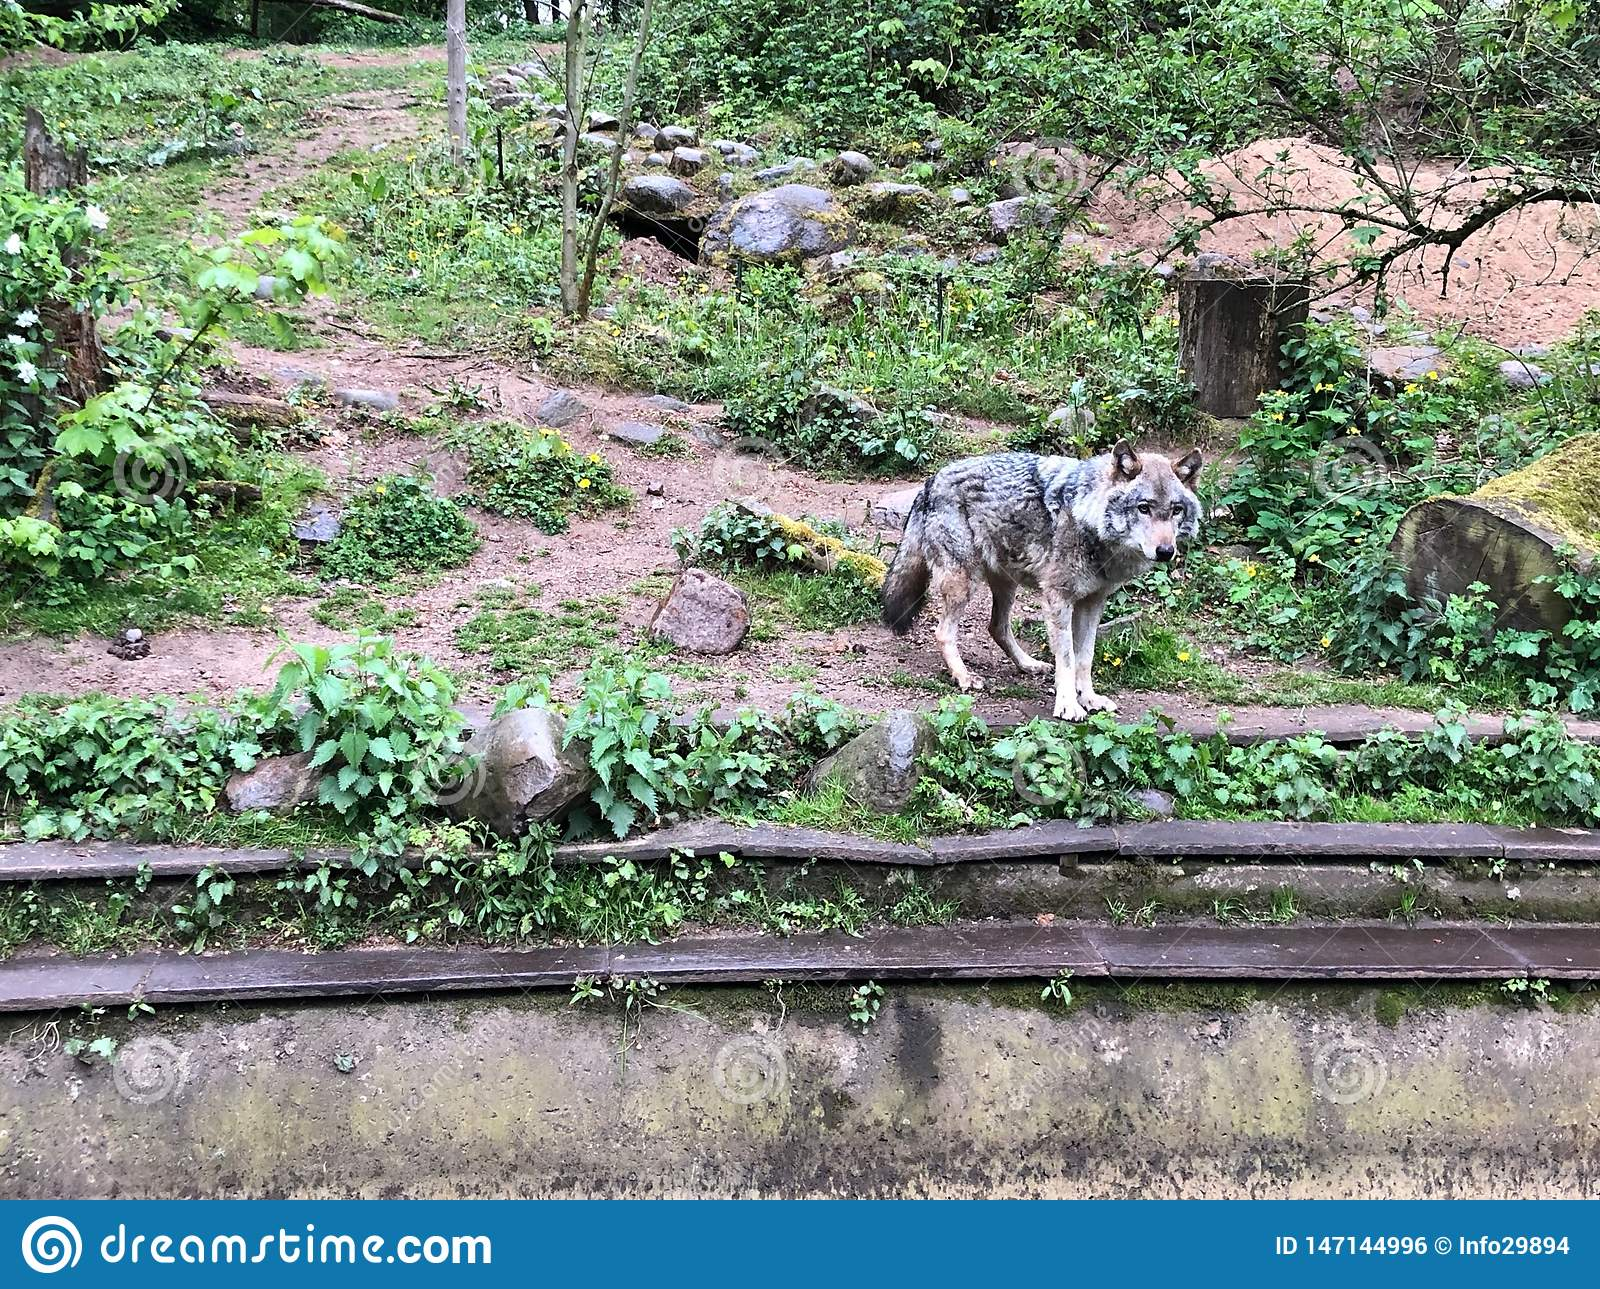 The wolf stands in the enclosure of a zoo